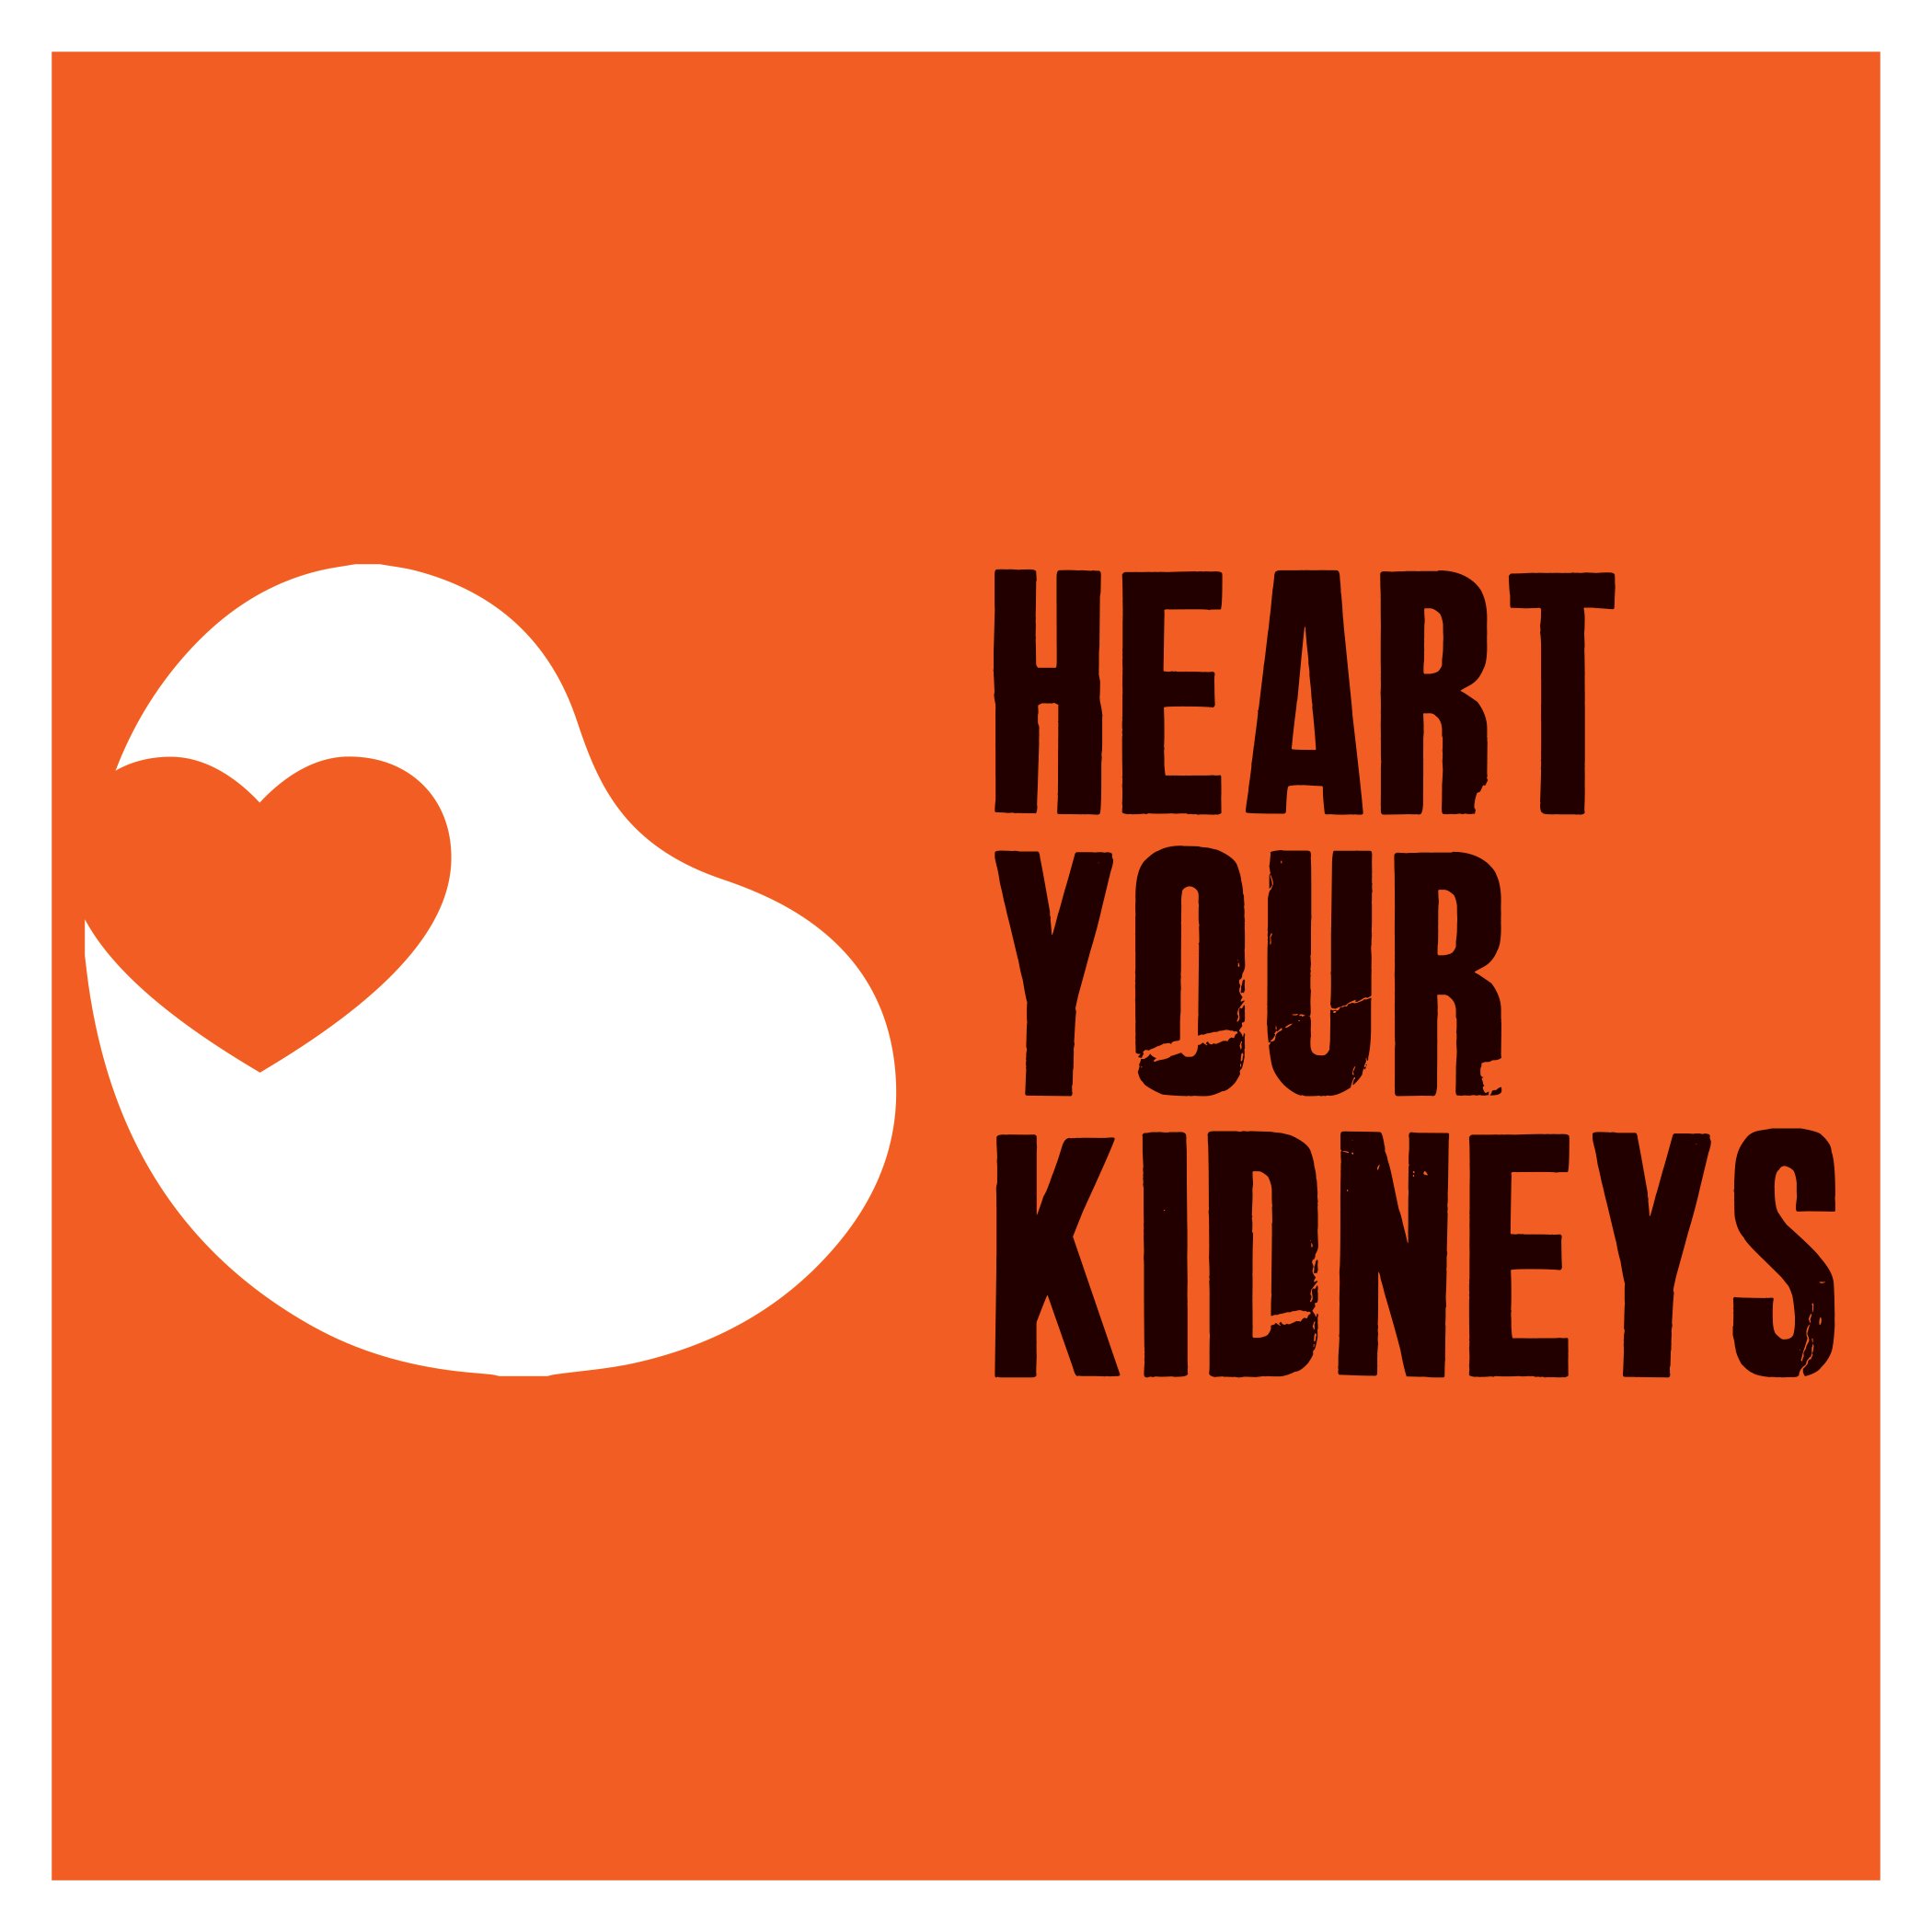 Heart Your Kidneys Toolbox